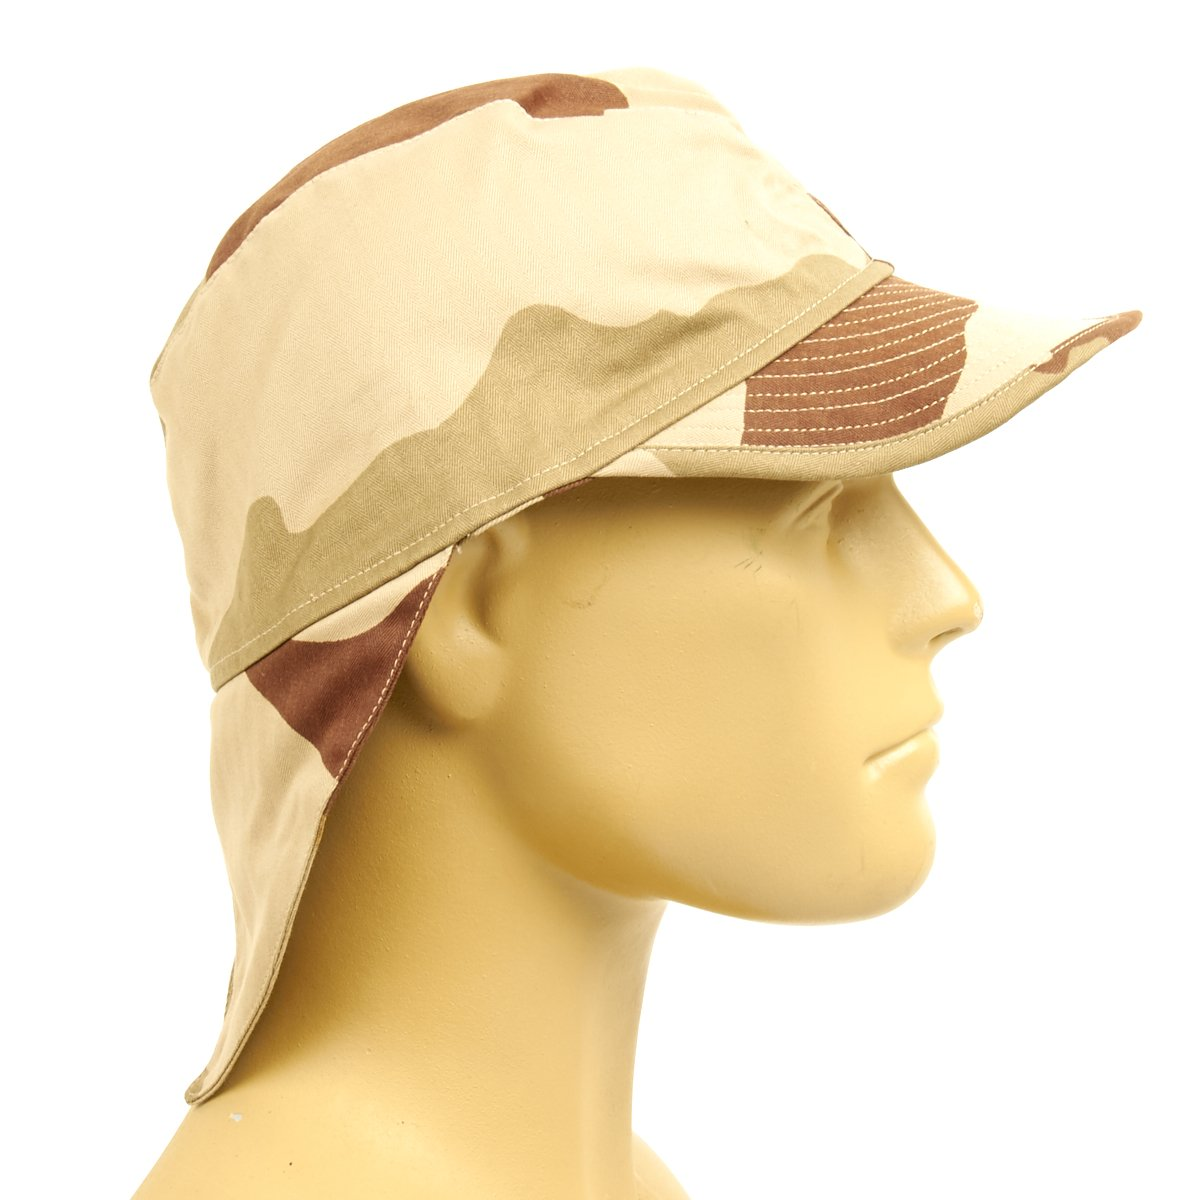 3af77b04c21 Original French F2 CCE Field Bigeard Cap Desert Camouflage with Swallowtail  Neck Flap